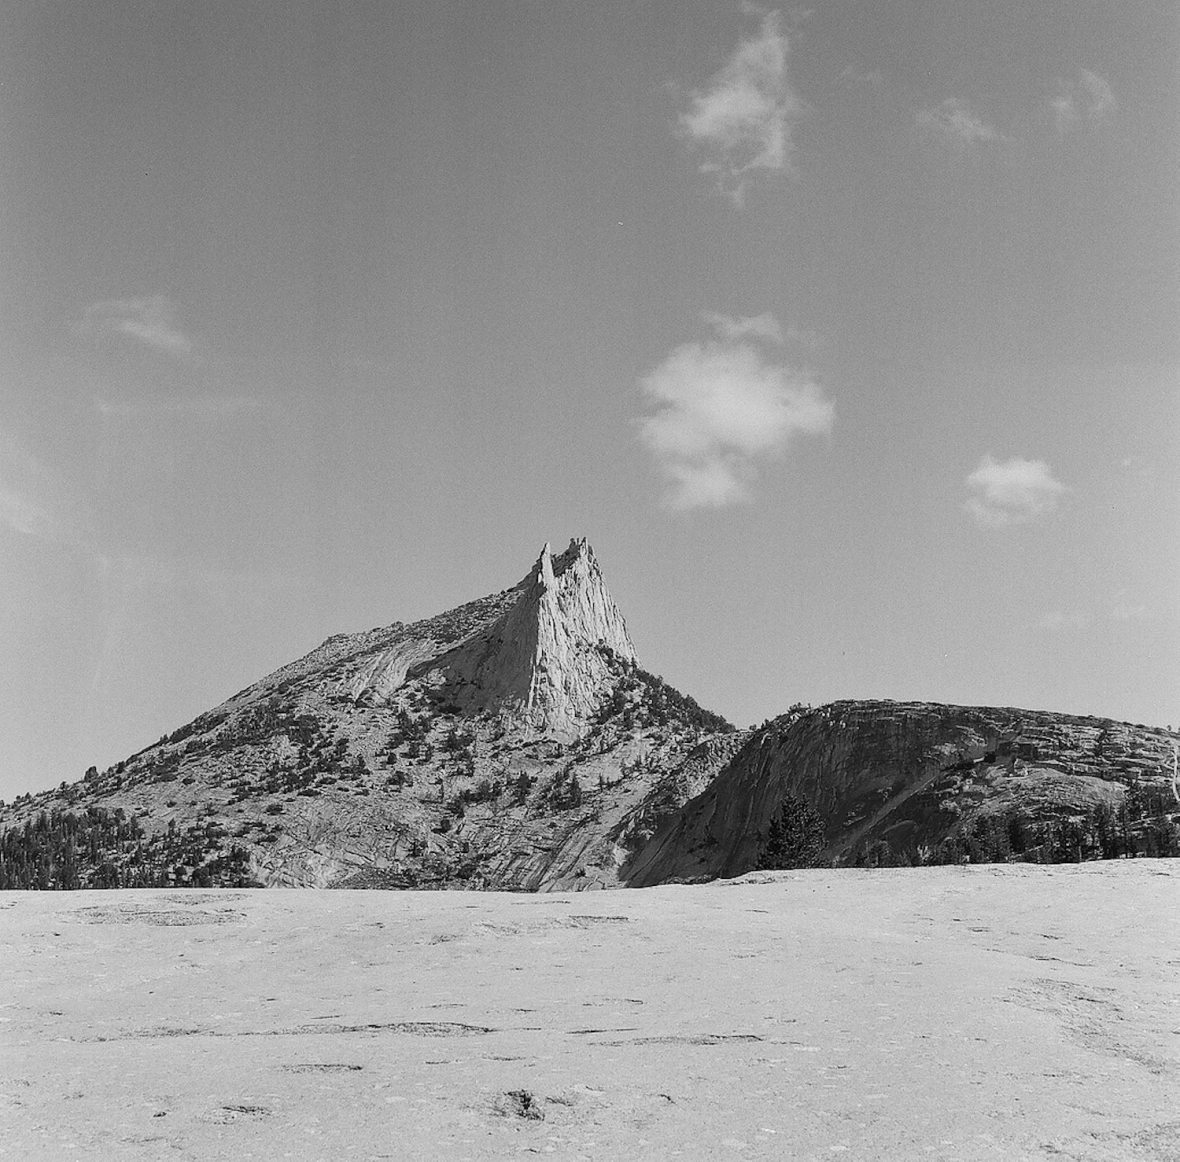 Medium format 120 mm monochrome film photography Cathedral Peak in Yosemite National Park